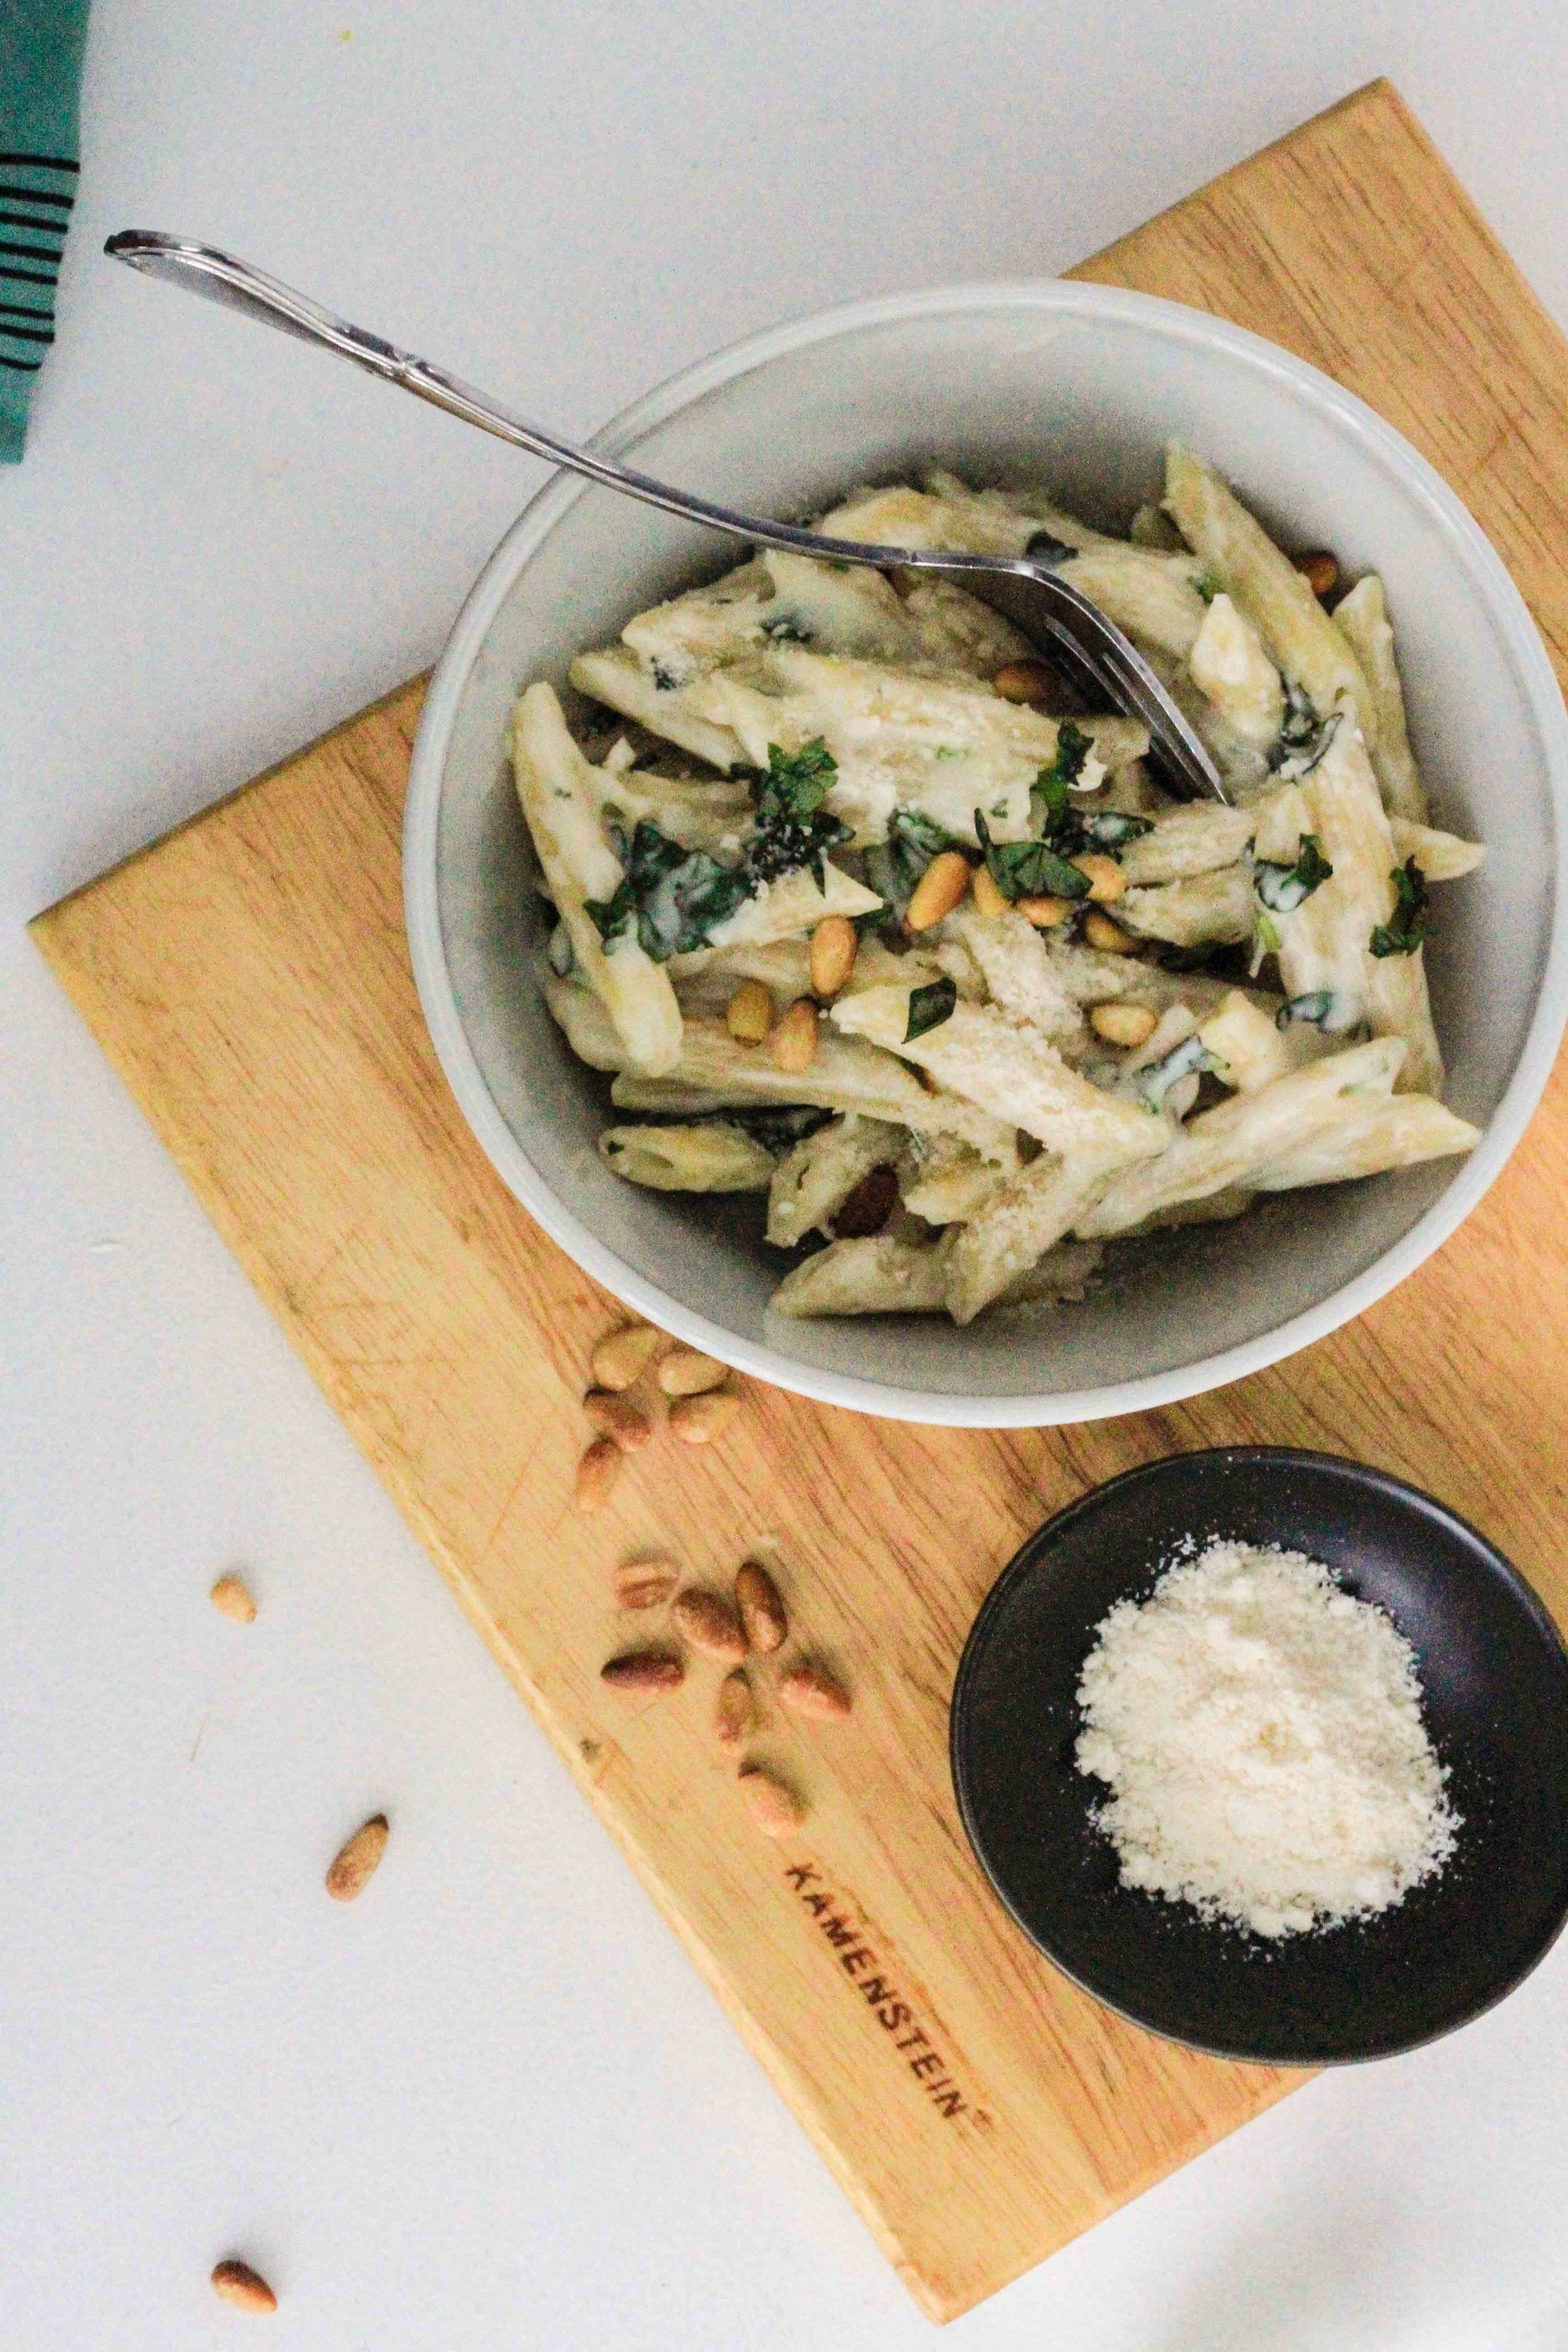 Creamy pasta with basil and pine nuts